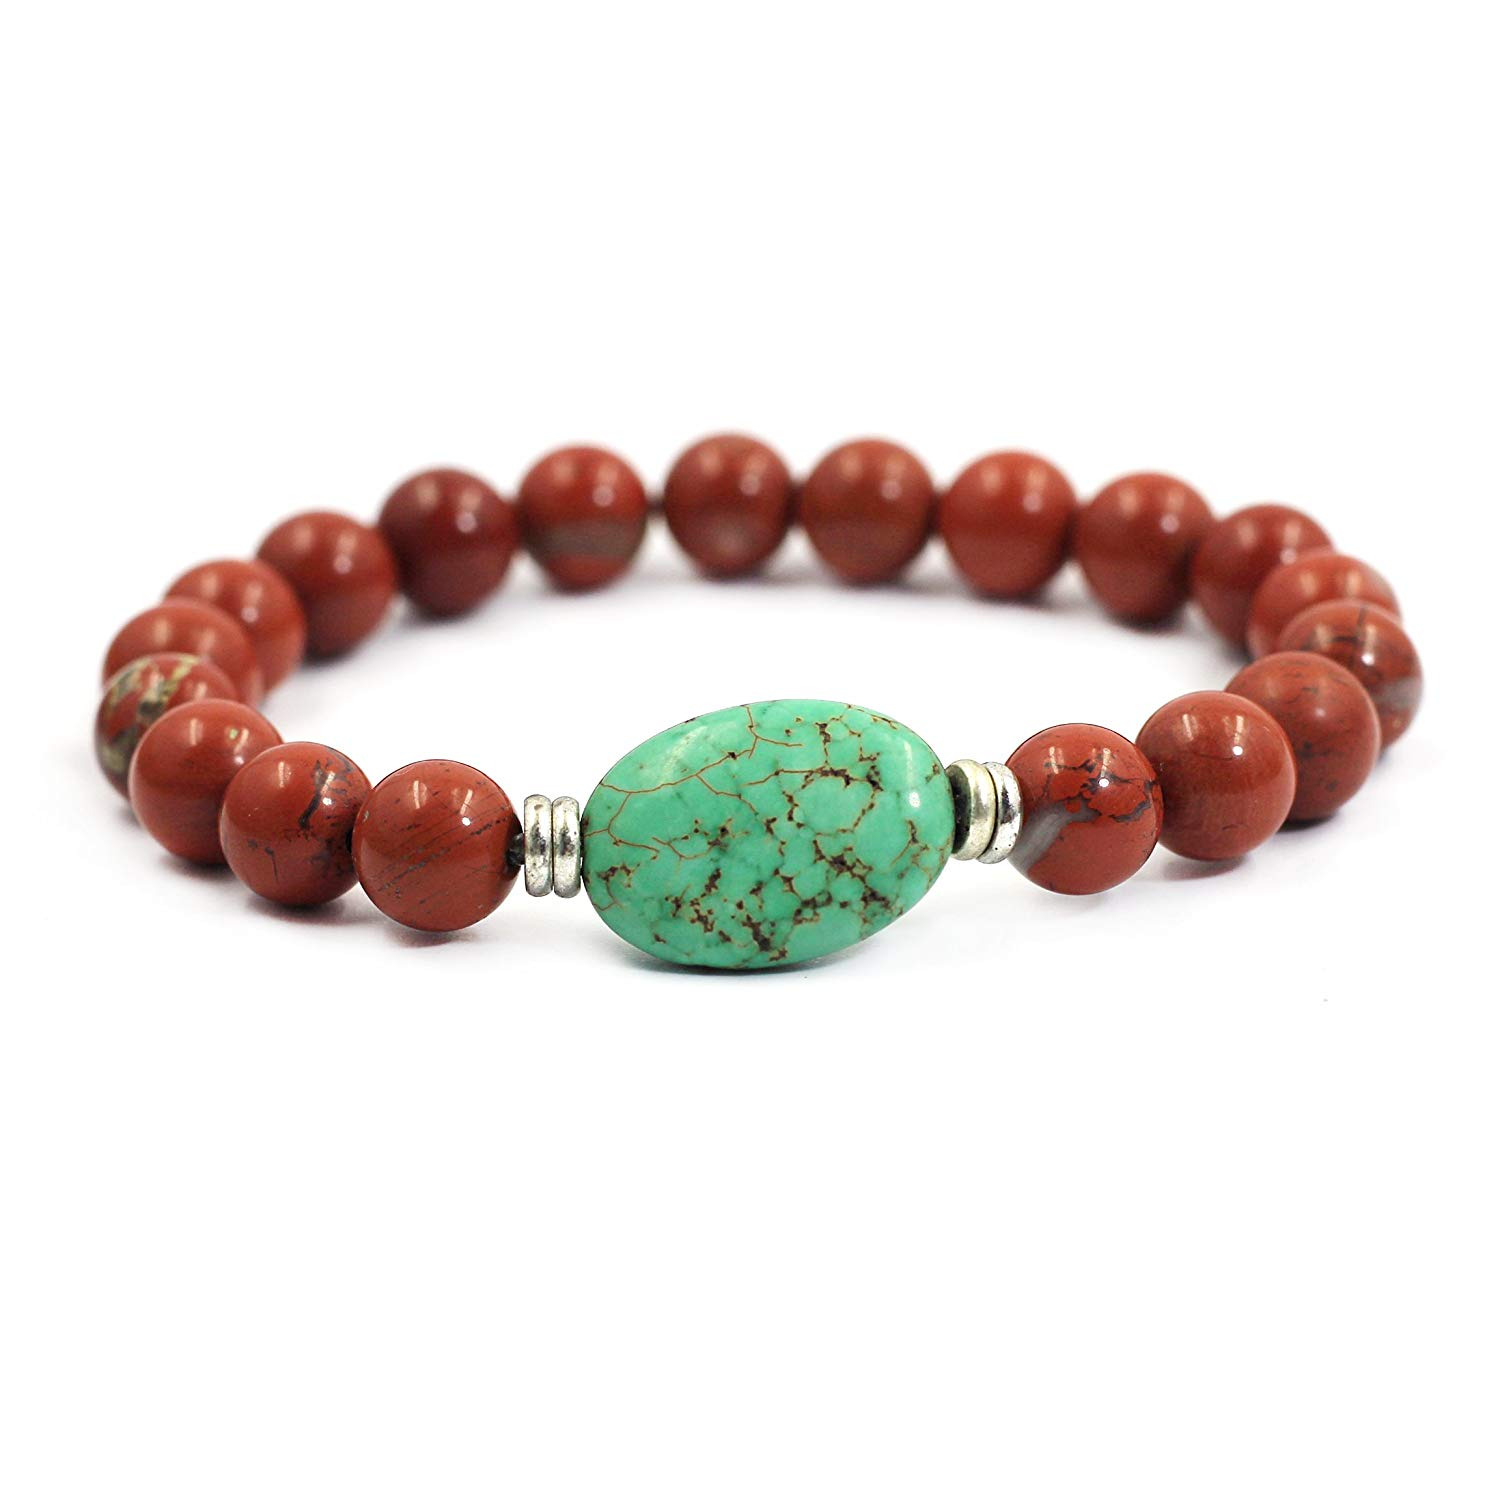 tom+alice Natural Gemstone 8MM Healing Beads Reiki Chakra Stretch Beaded Bracelets with Middle Ornament Womens Fashion (Red Stone Silver)